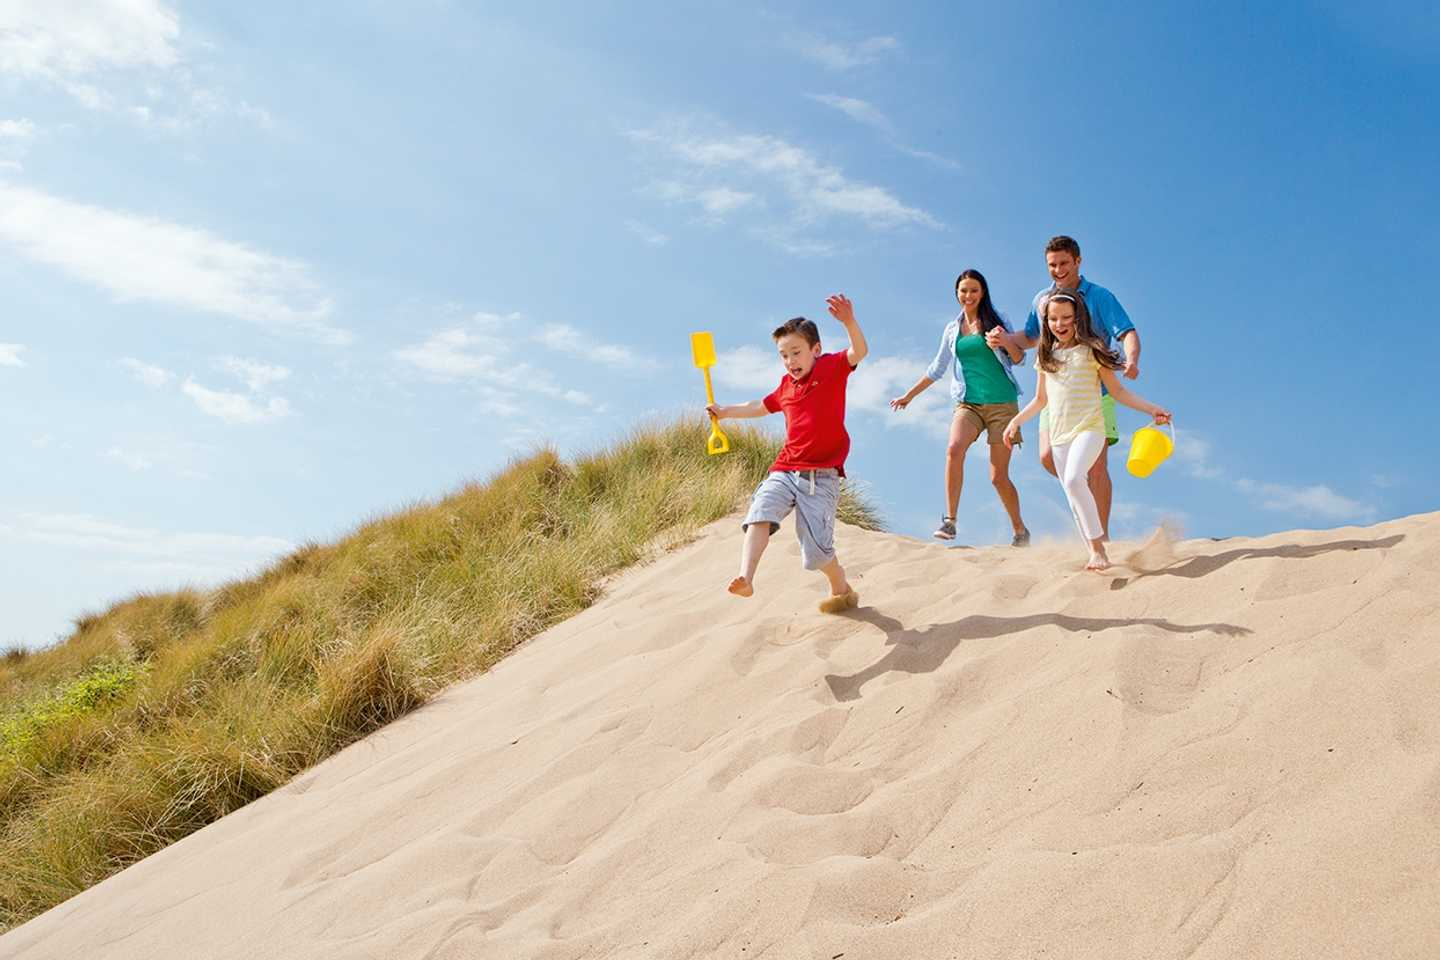 Guests running over the sand dunes